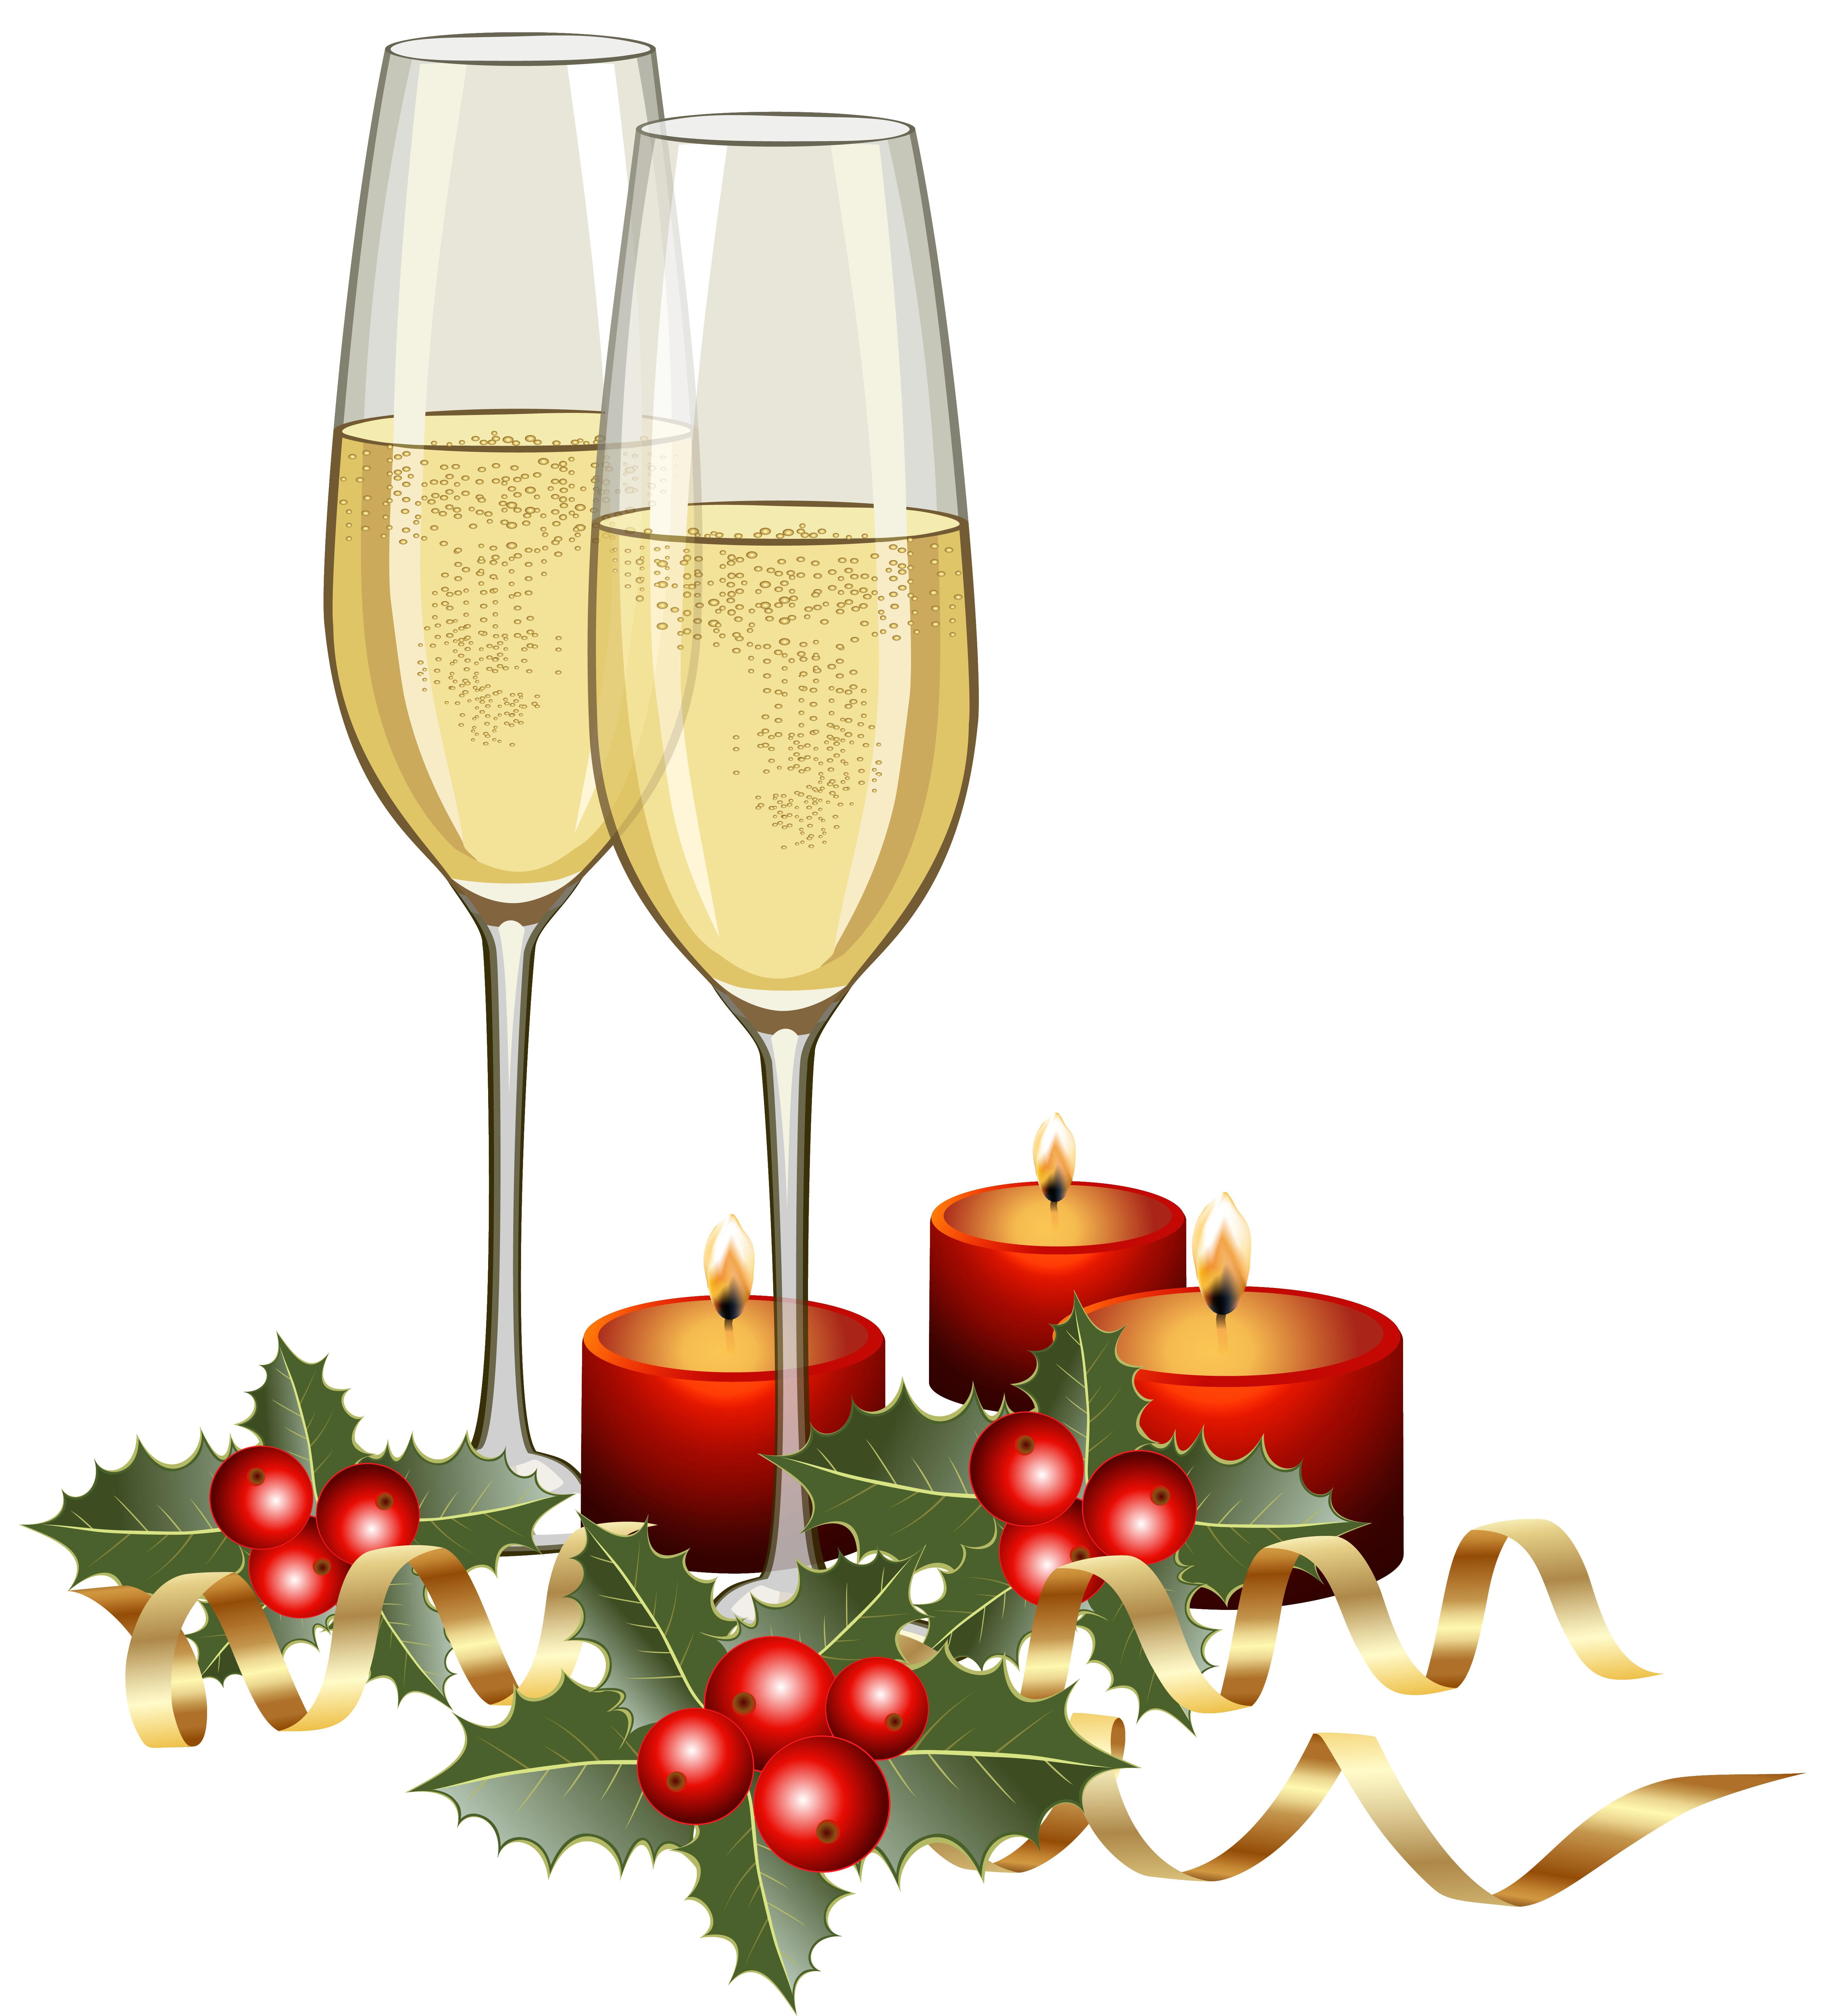 5603x6181 Christmas Champagne And Candles Png Clipart Imageu200b Gallery